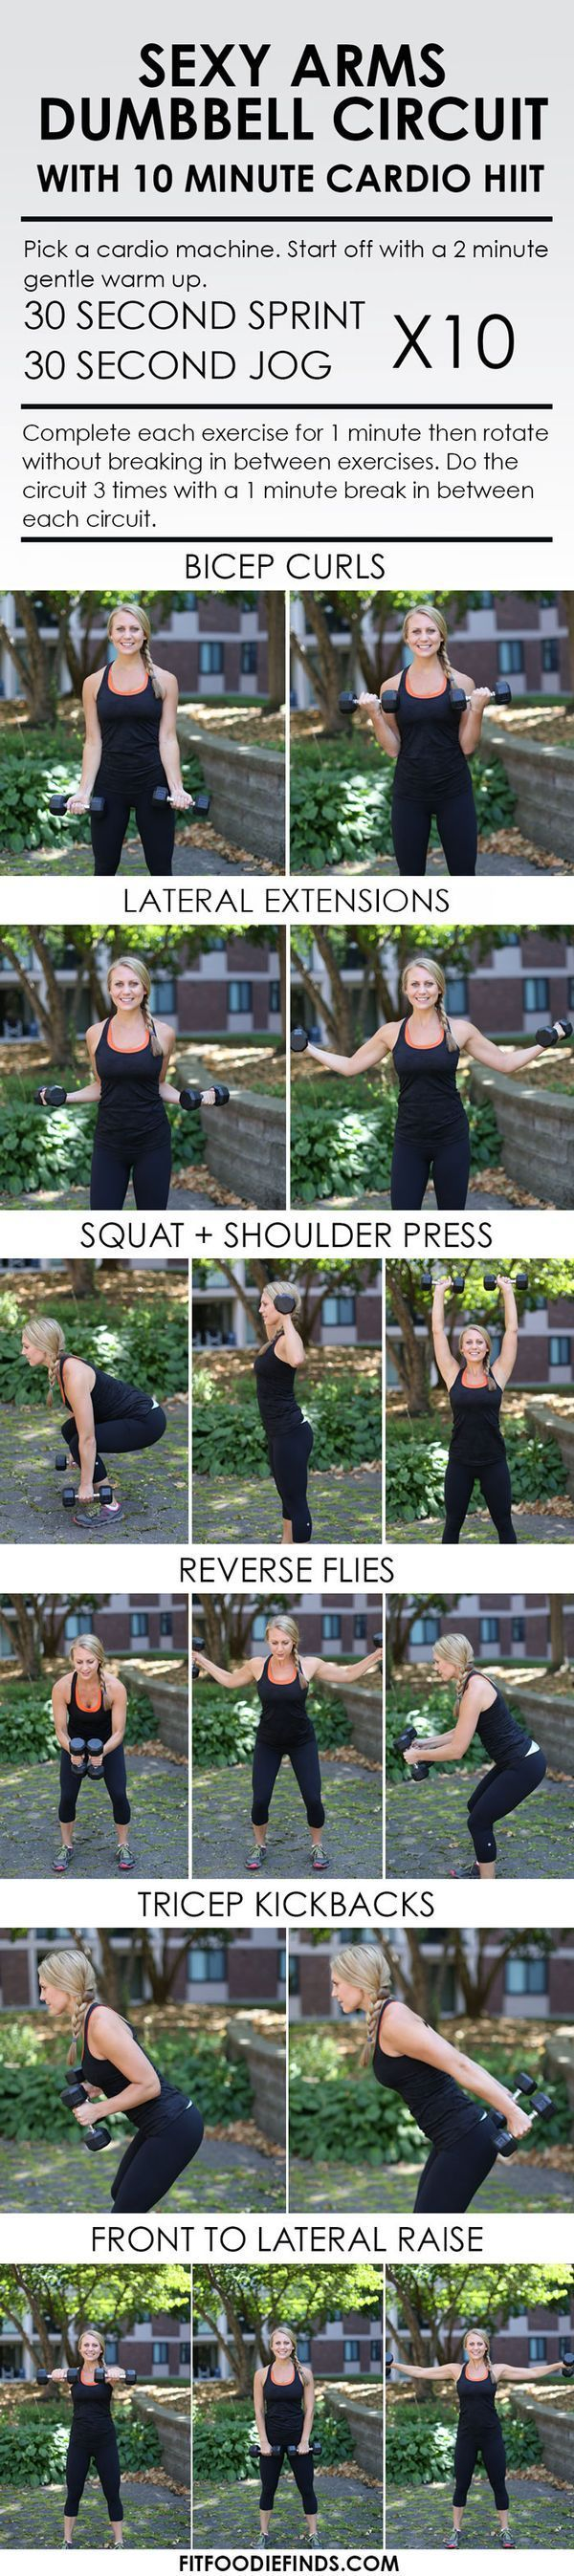 Sexy Arms Dumbbell Circuit Workout with 10 Minute Cardio HIIT #workout #fitness